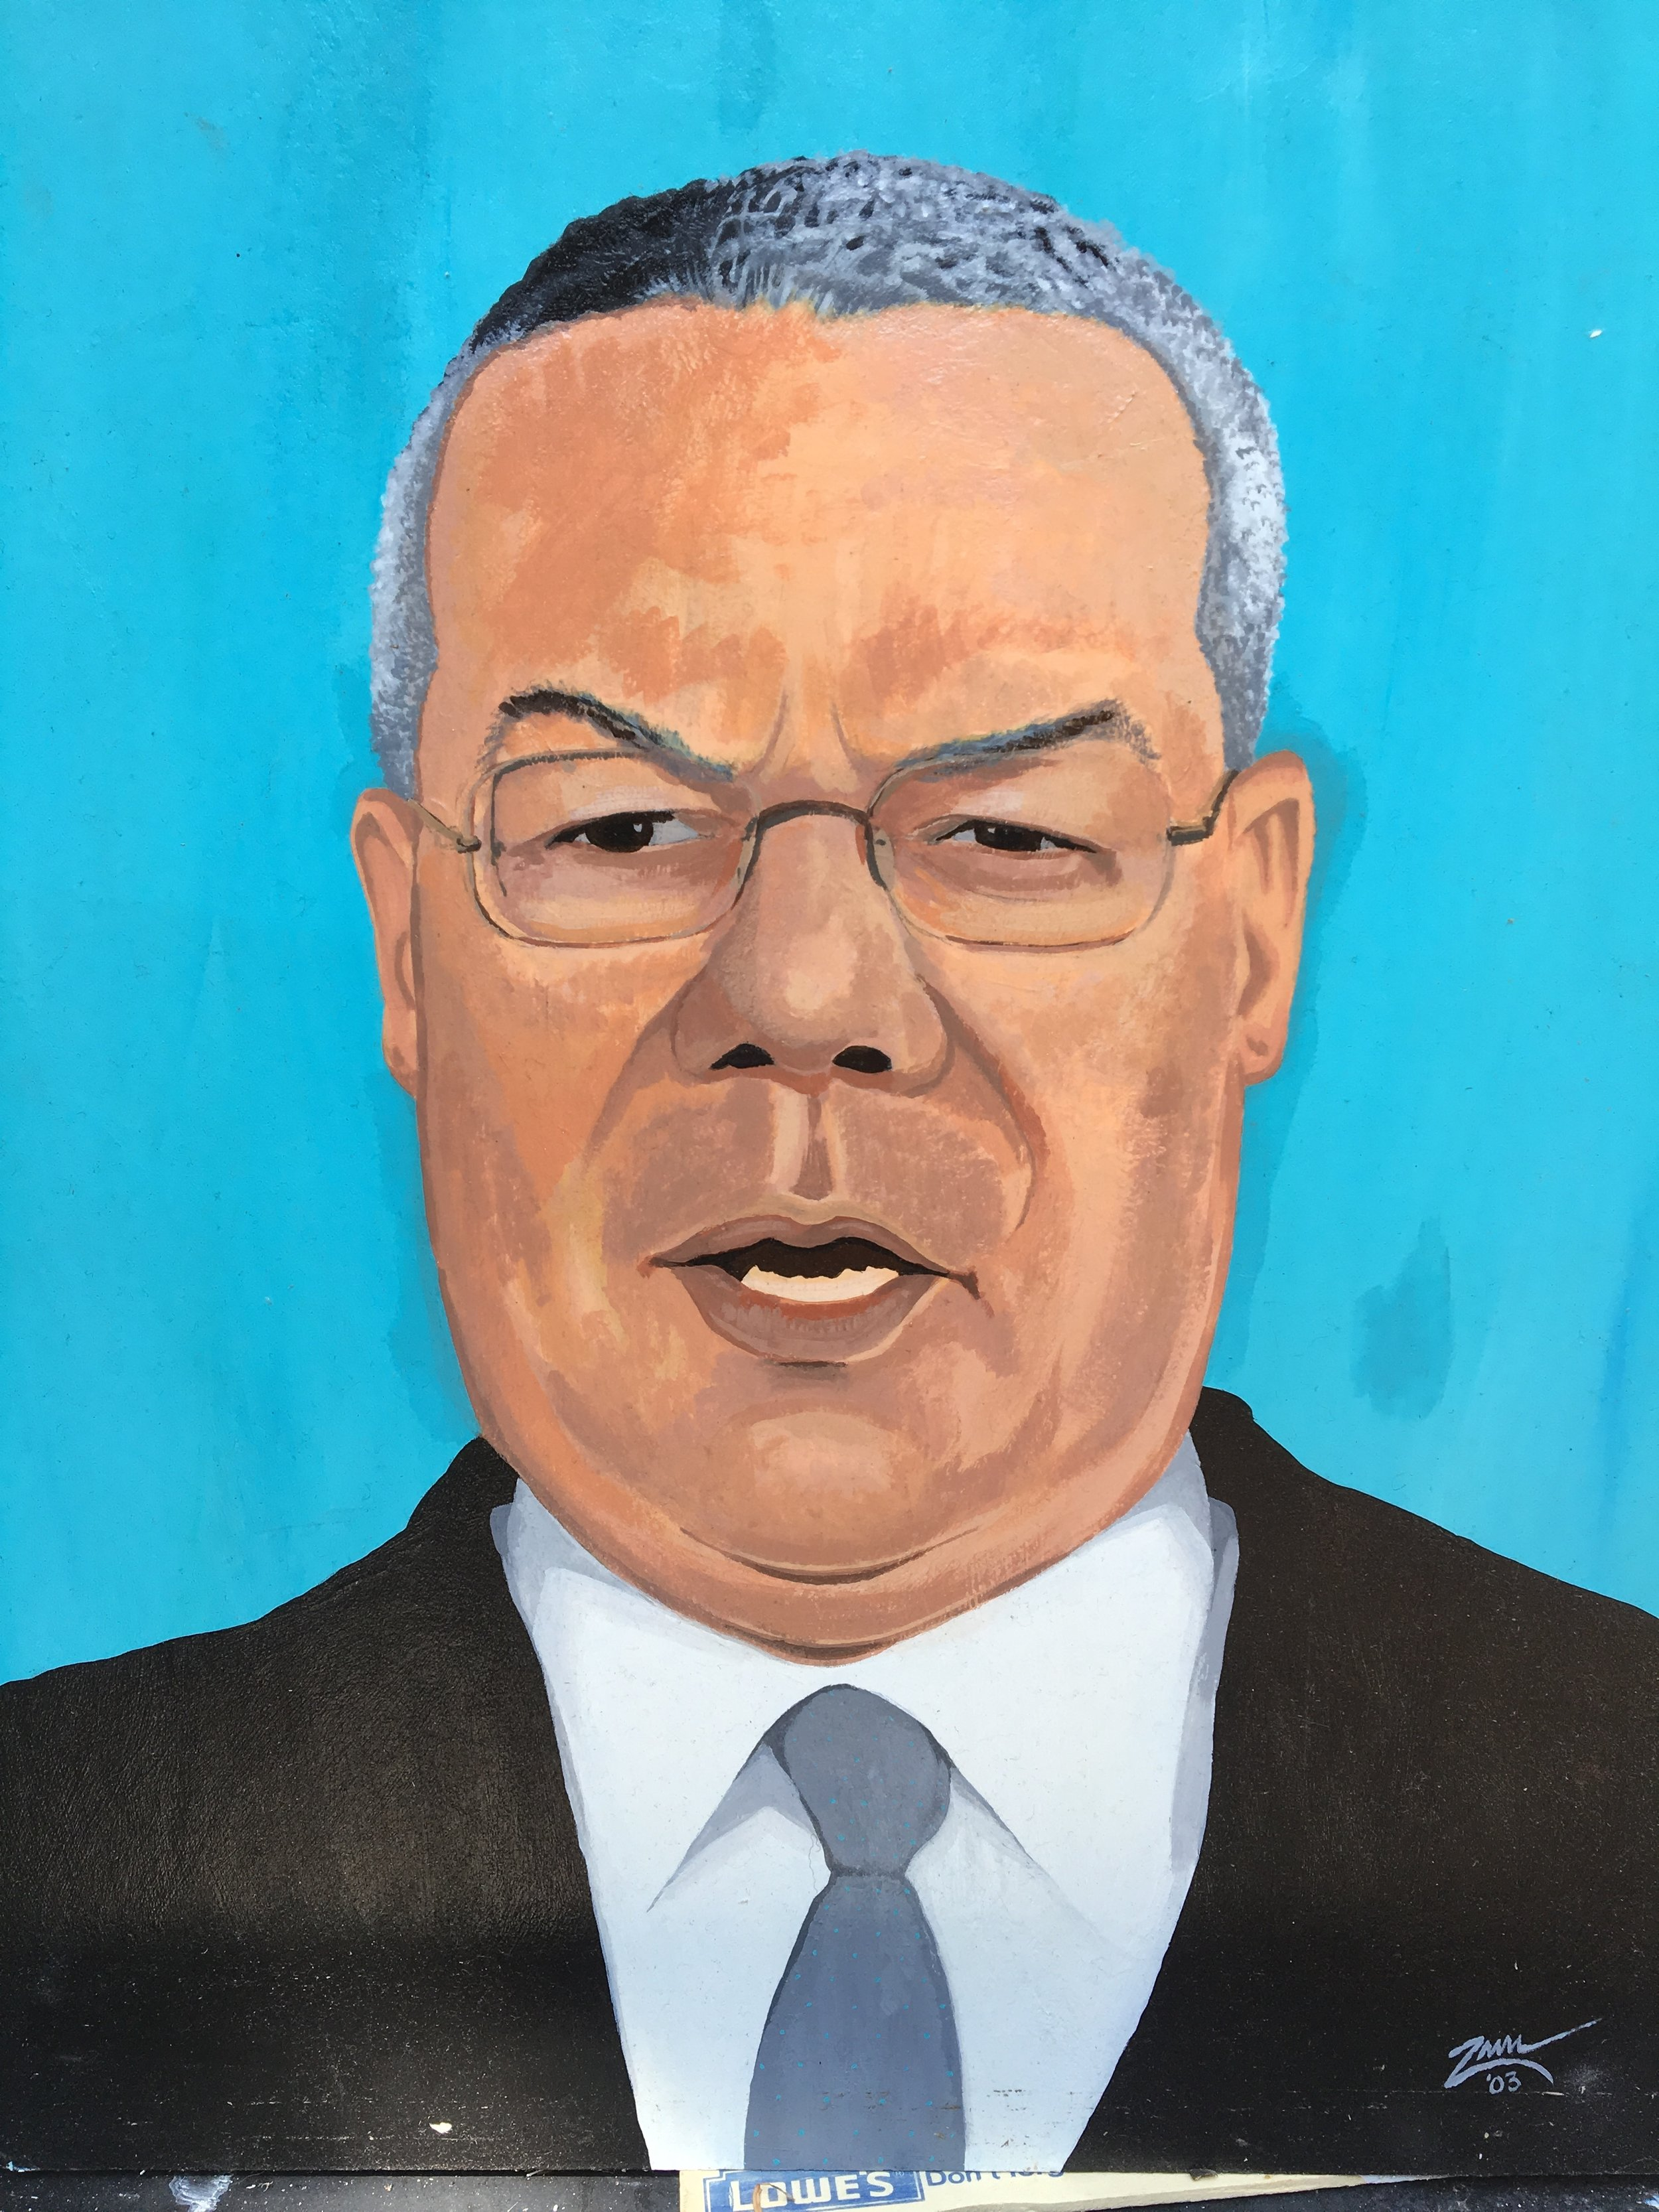 """Zamora, Gil.  Secretary of State, Colin Powell.  2003. Acrylic on illustration board, 15"""" x 20"""". Private collection."""